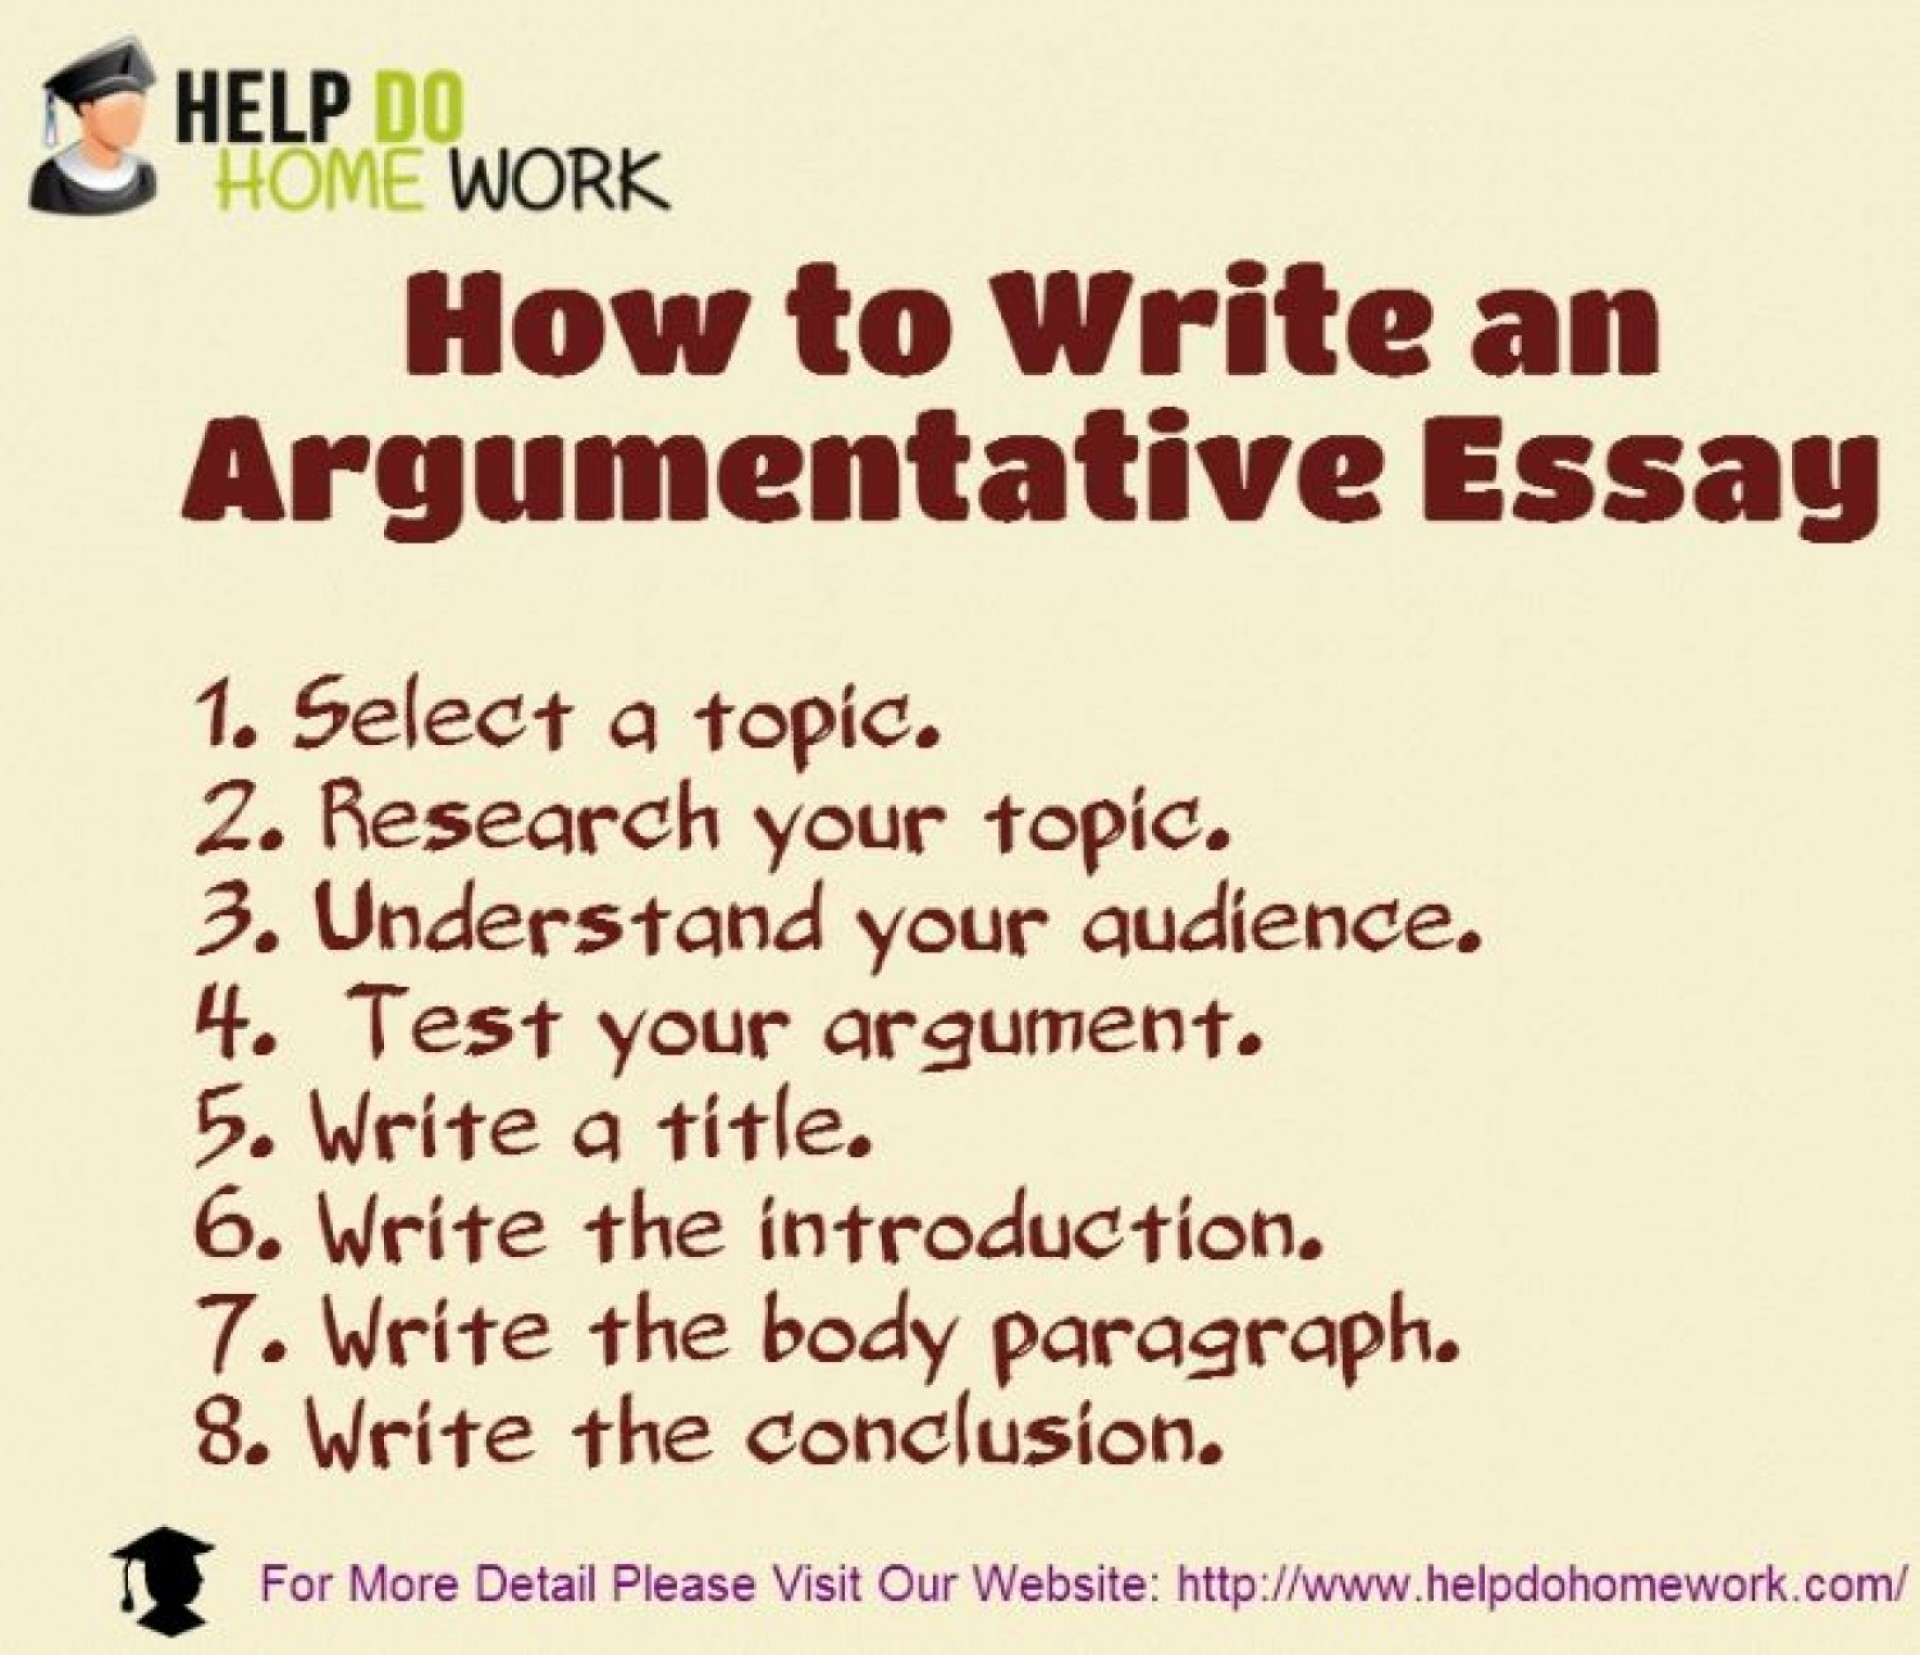 003 Utilize Functional And Utilitarian Approach For Your Academic Work 53b0d9bea1f6e W1500 Jpg Essay Example Steps Writing An Impressive Argumentative Second Step In To Middle School Pdf How Write 9 Easy 1920